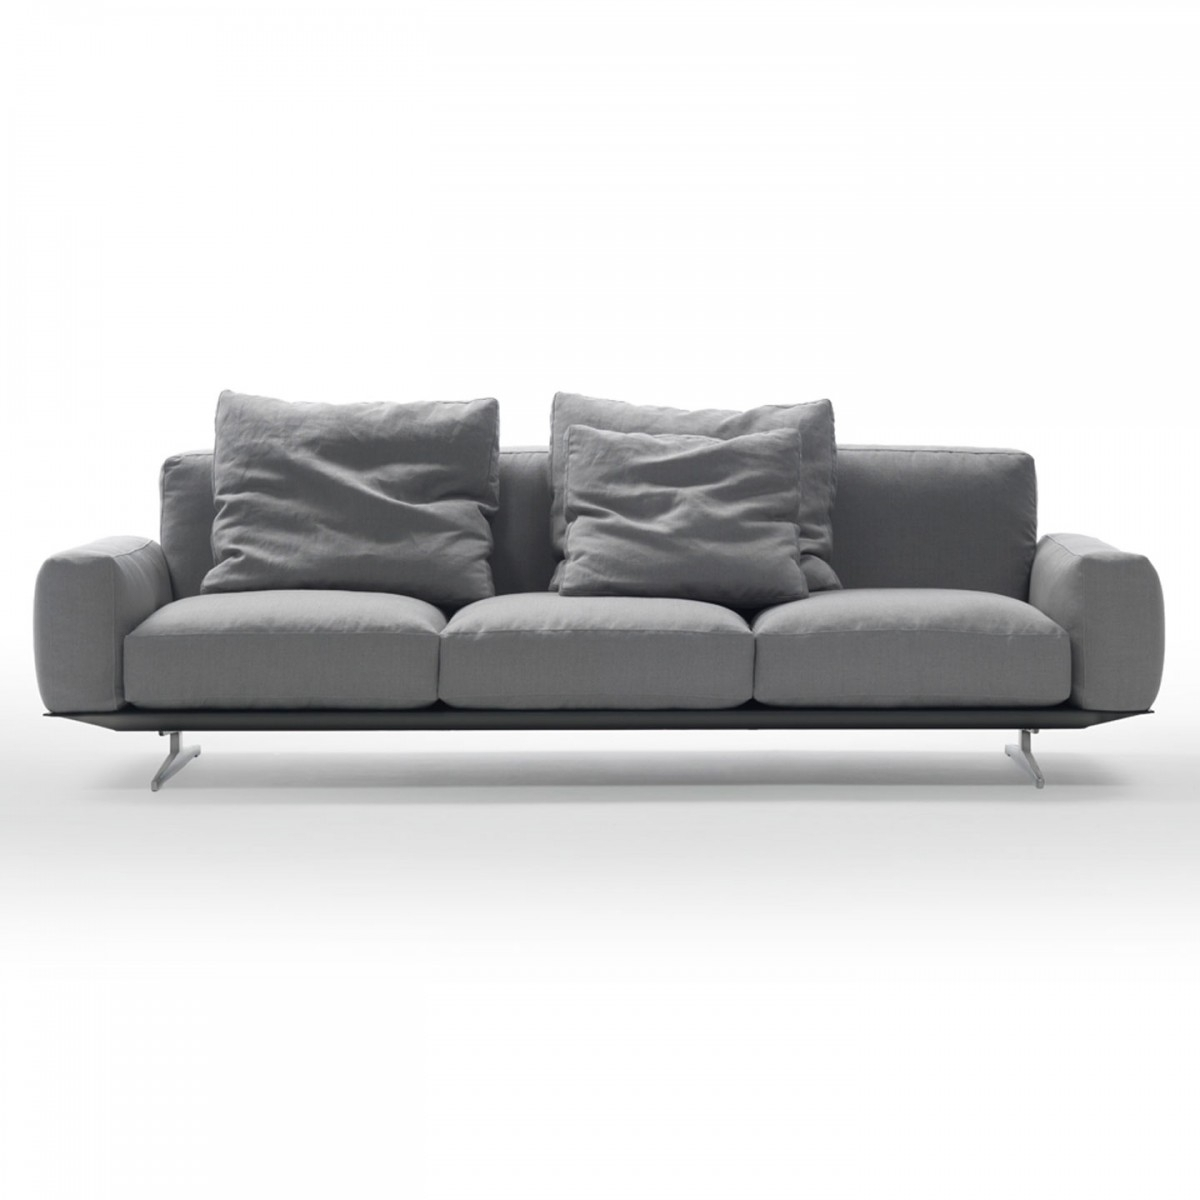 Dream Low Arm 233Cm Sofa Throughout Low Sofas (View 7 of 10)